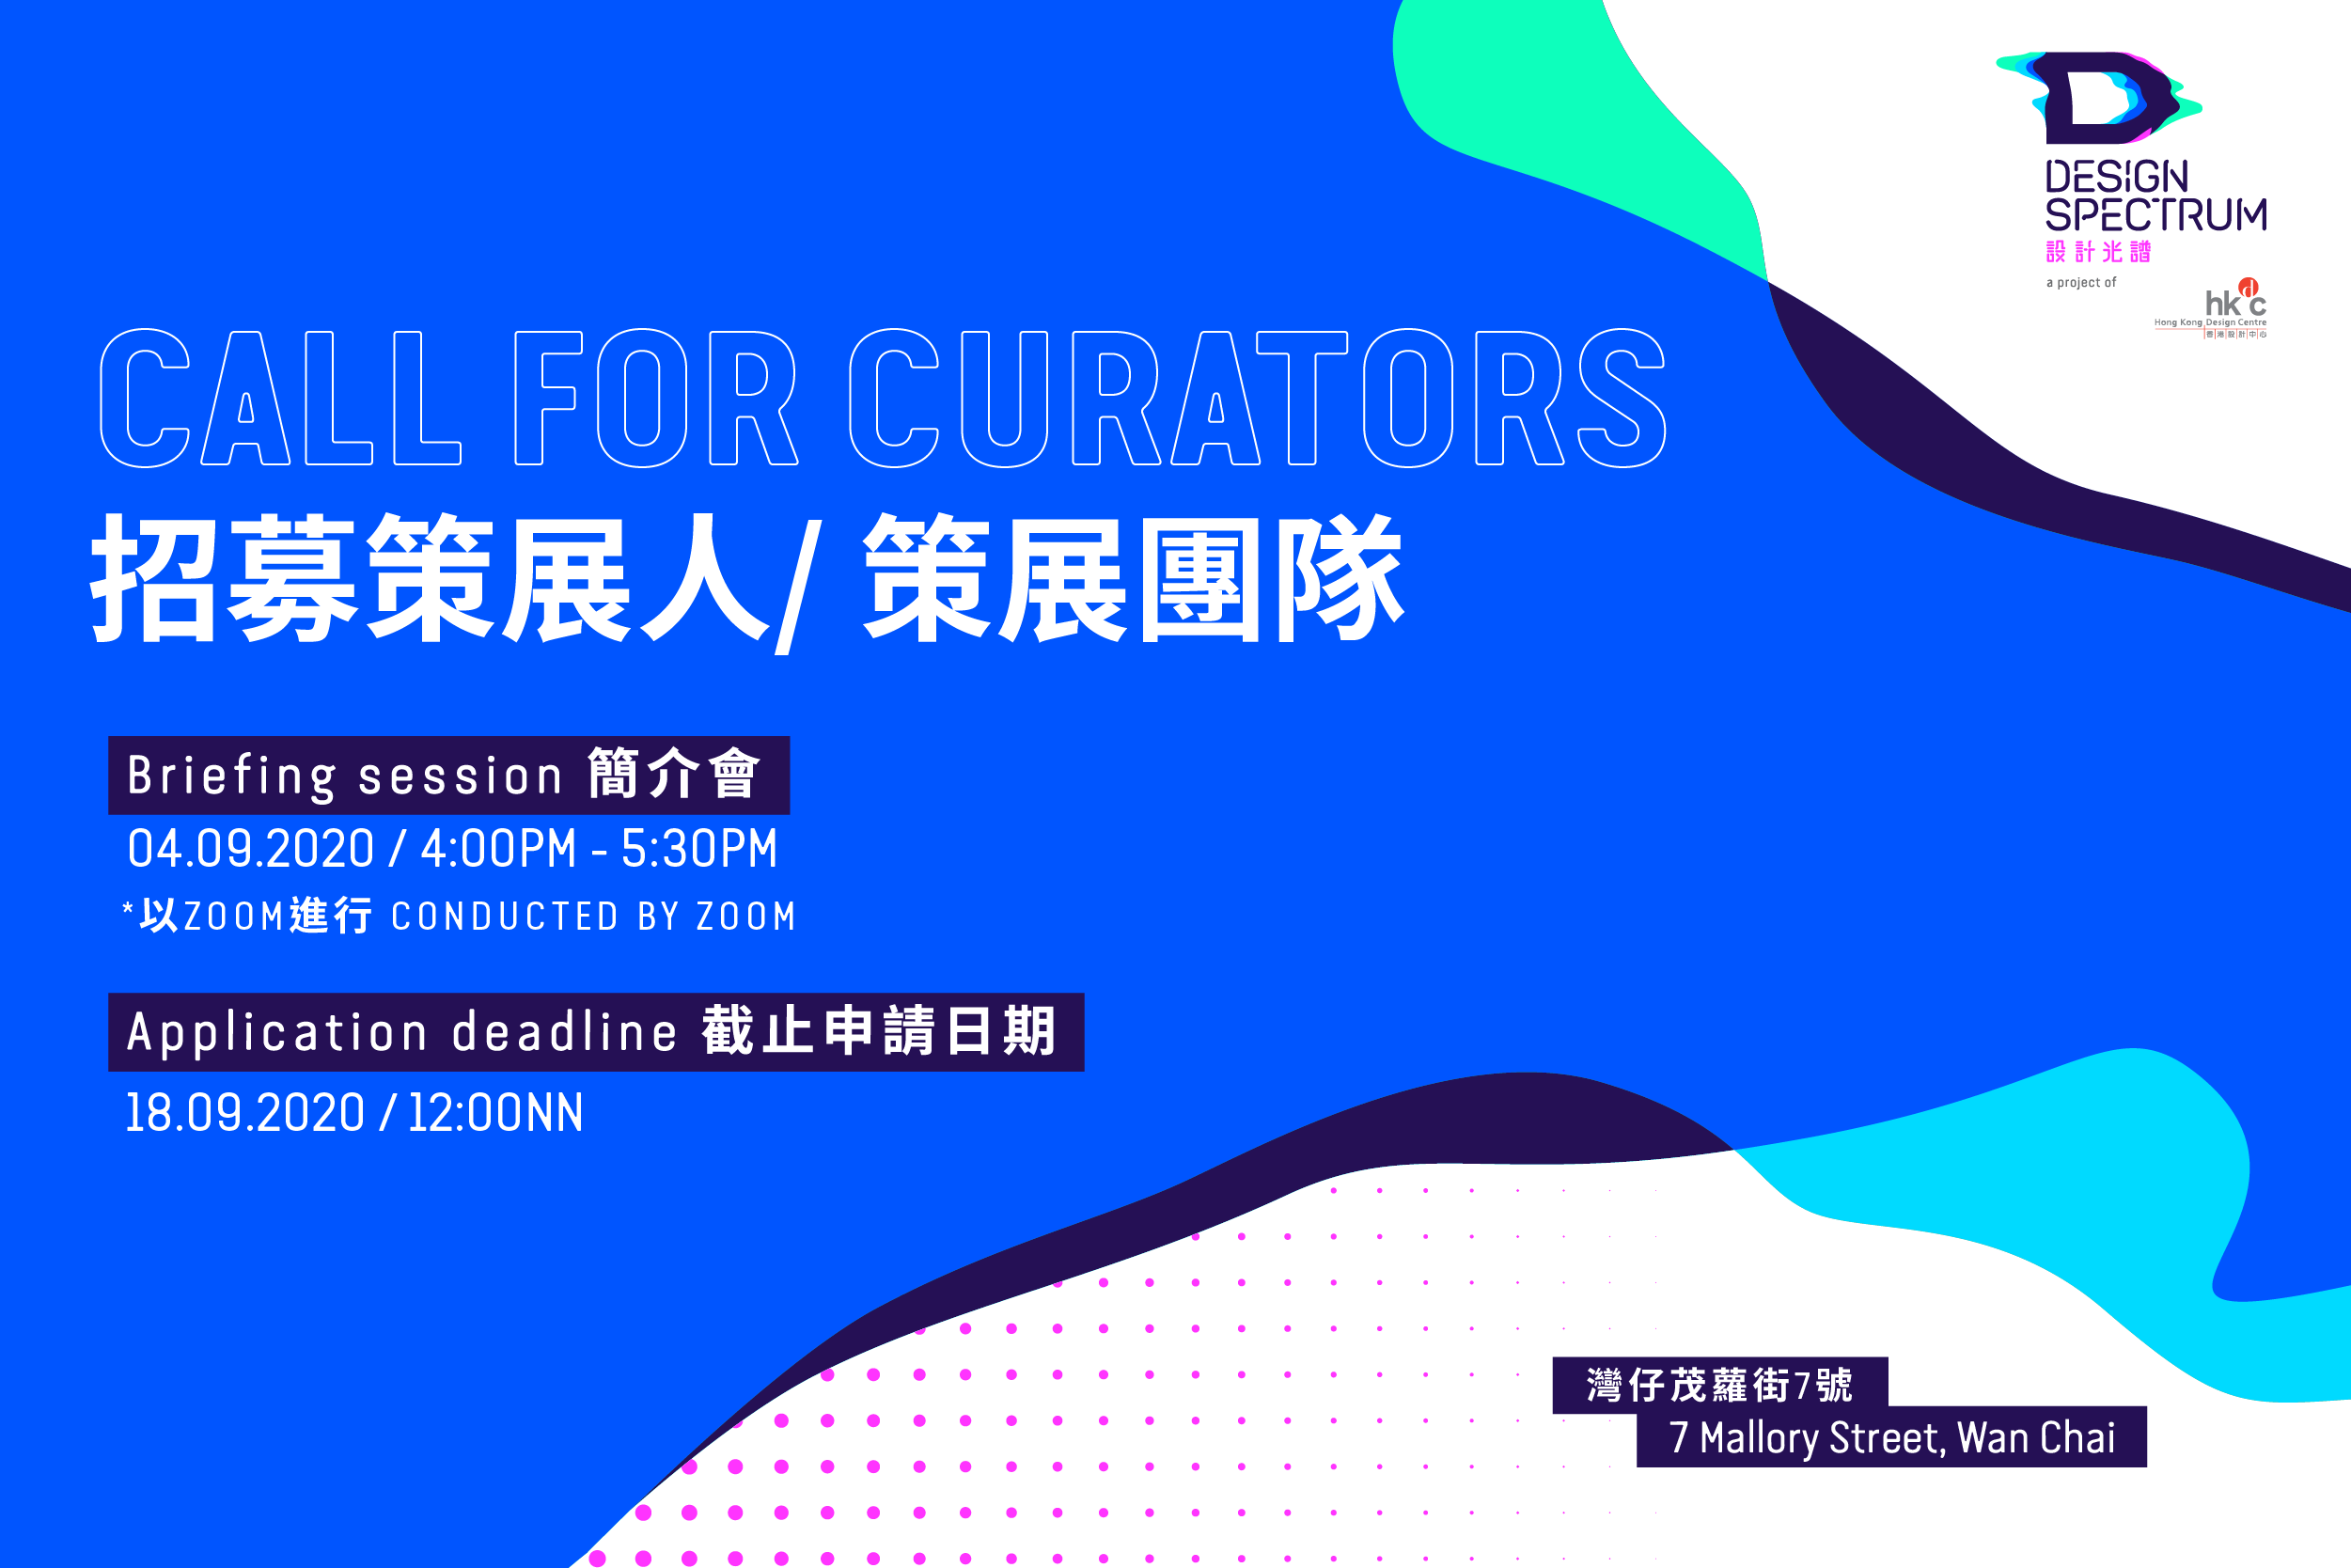 Design Spectrum 2020 Call for Proposals: Design & Curatorial Services